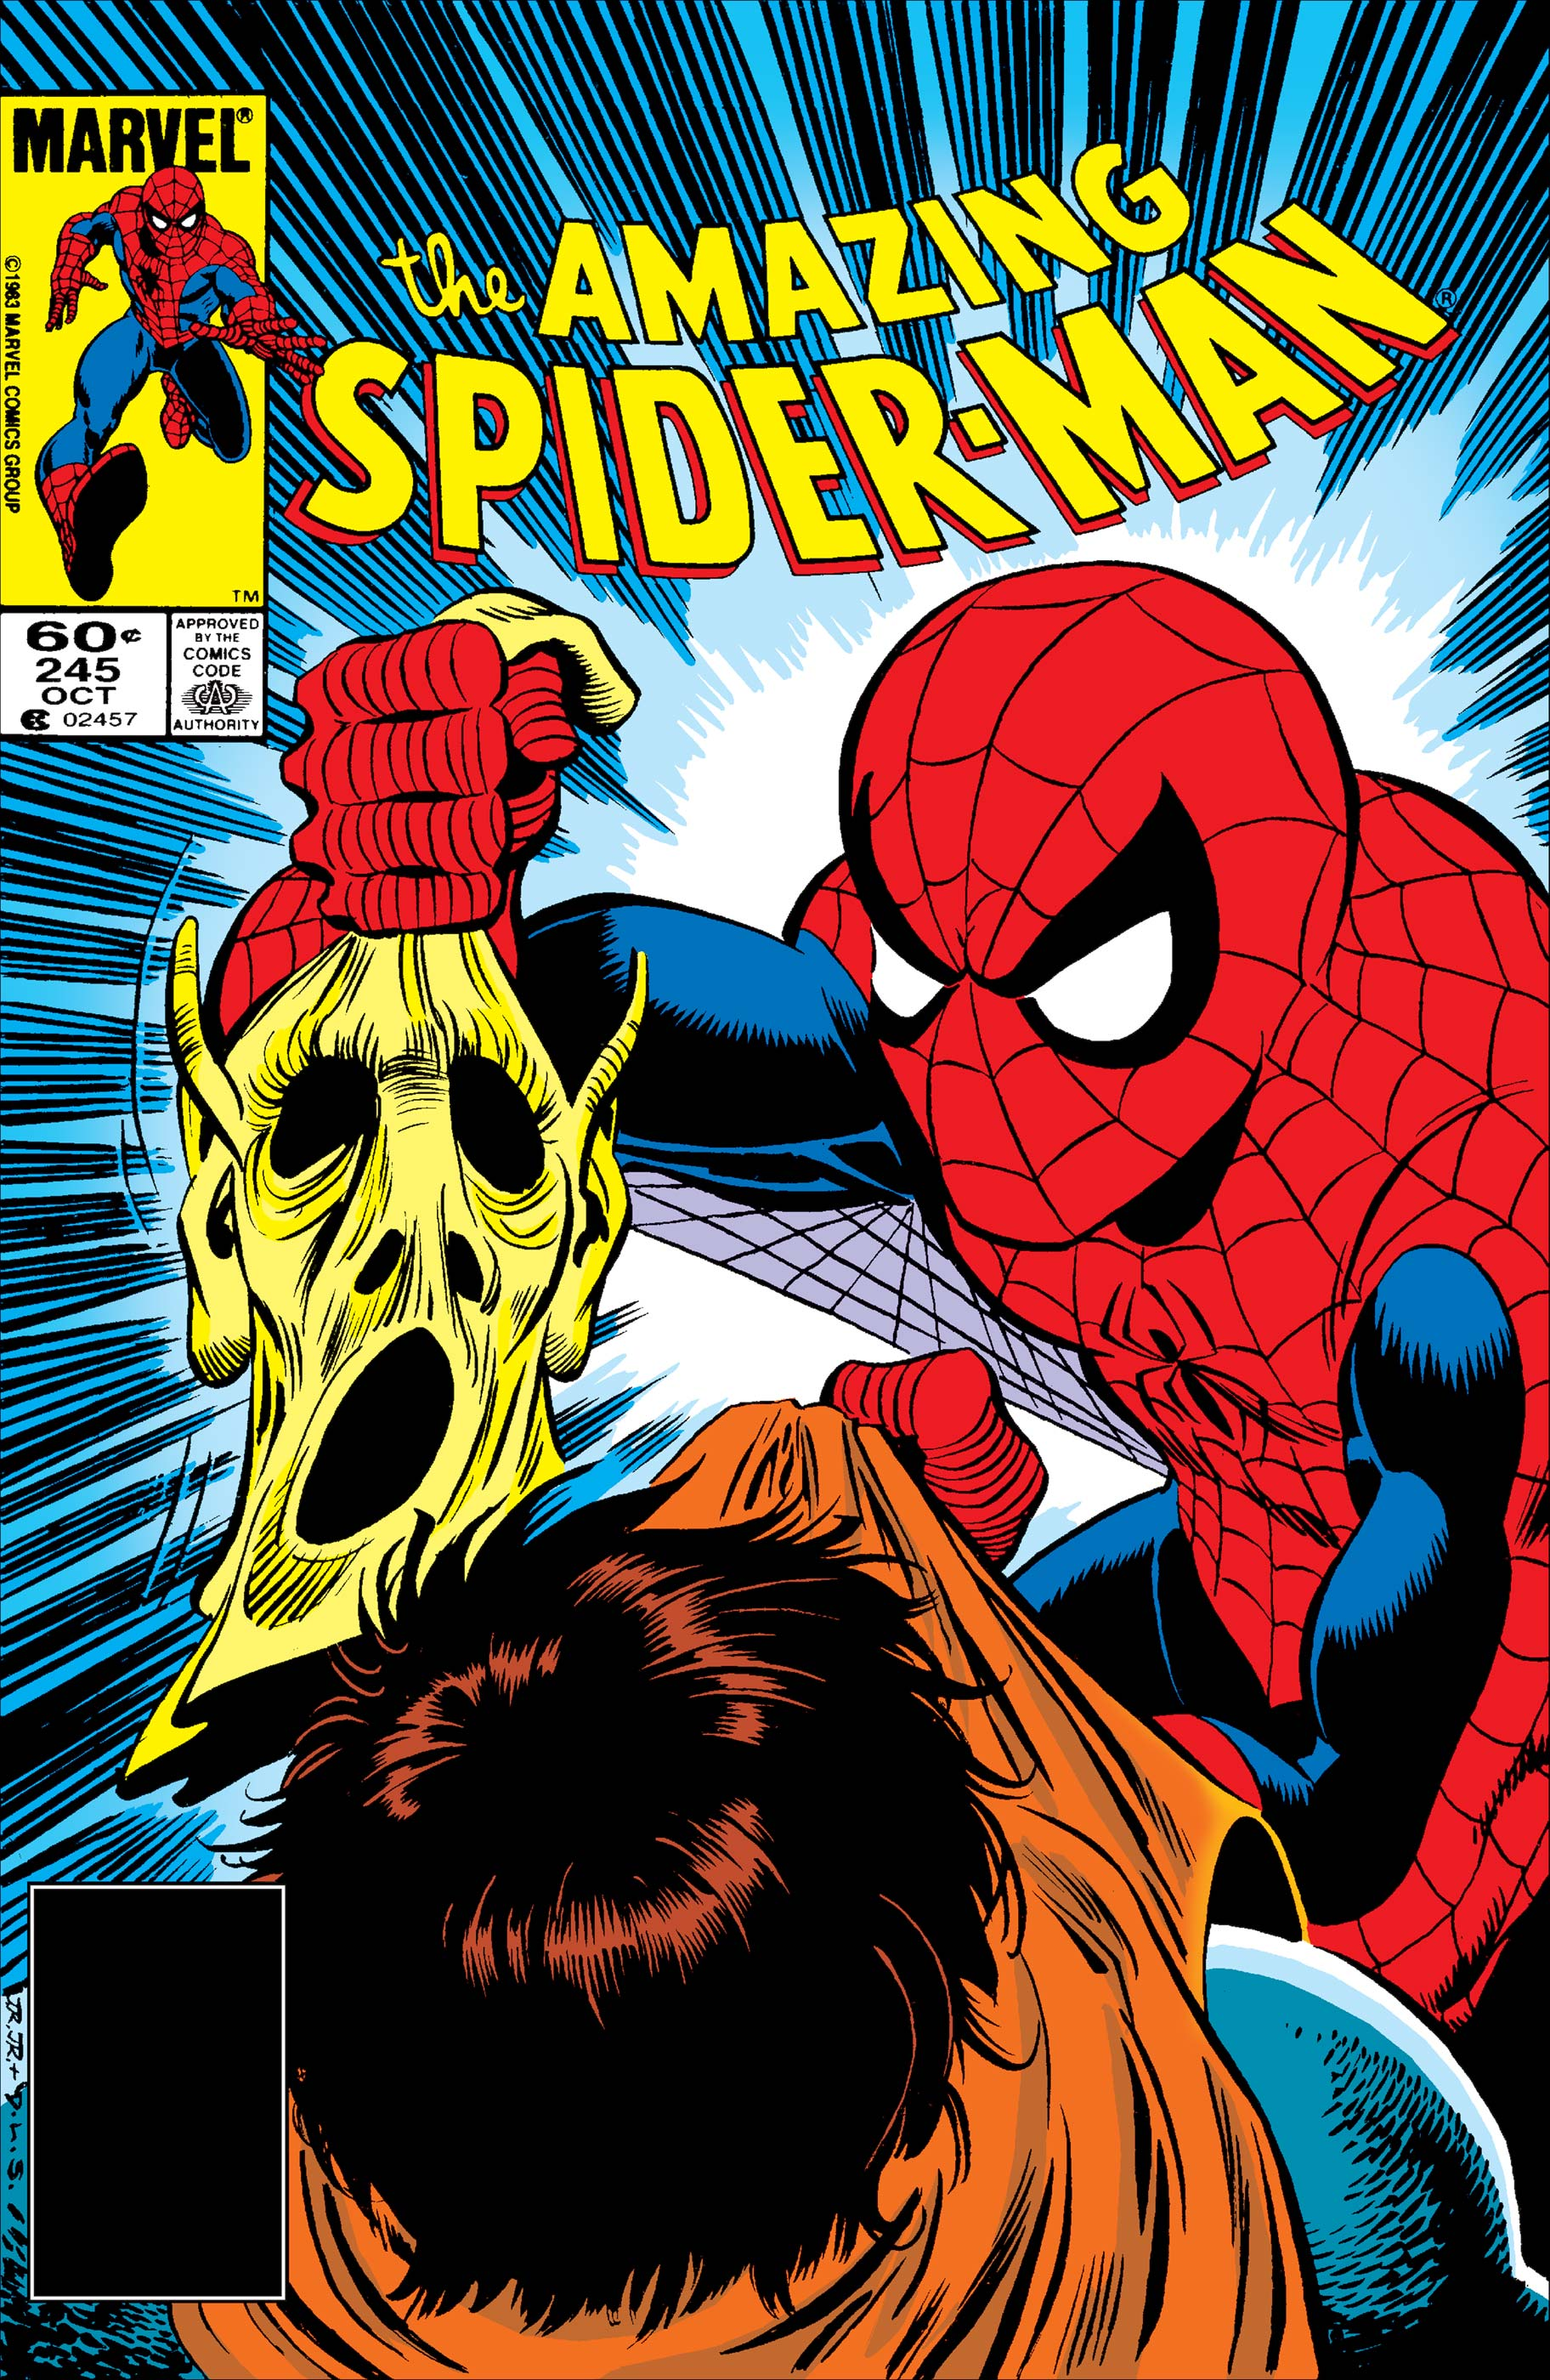 The Amazing Spider-Man (1963) #245